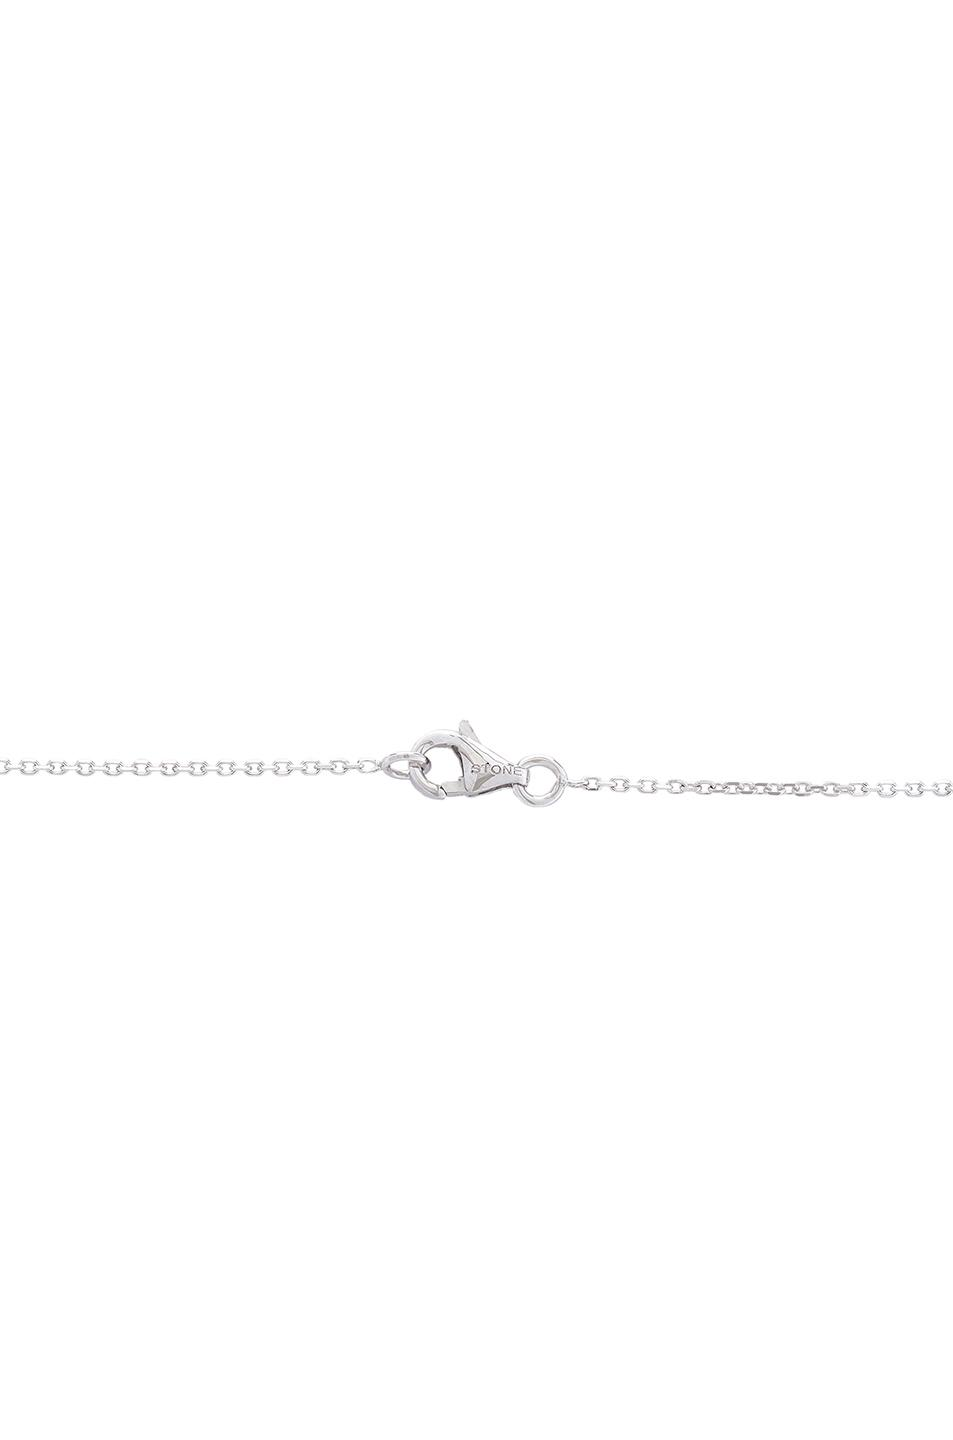 Stone Paris Passion Long Necklace in White Gold (Metallic)